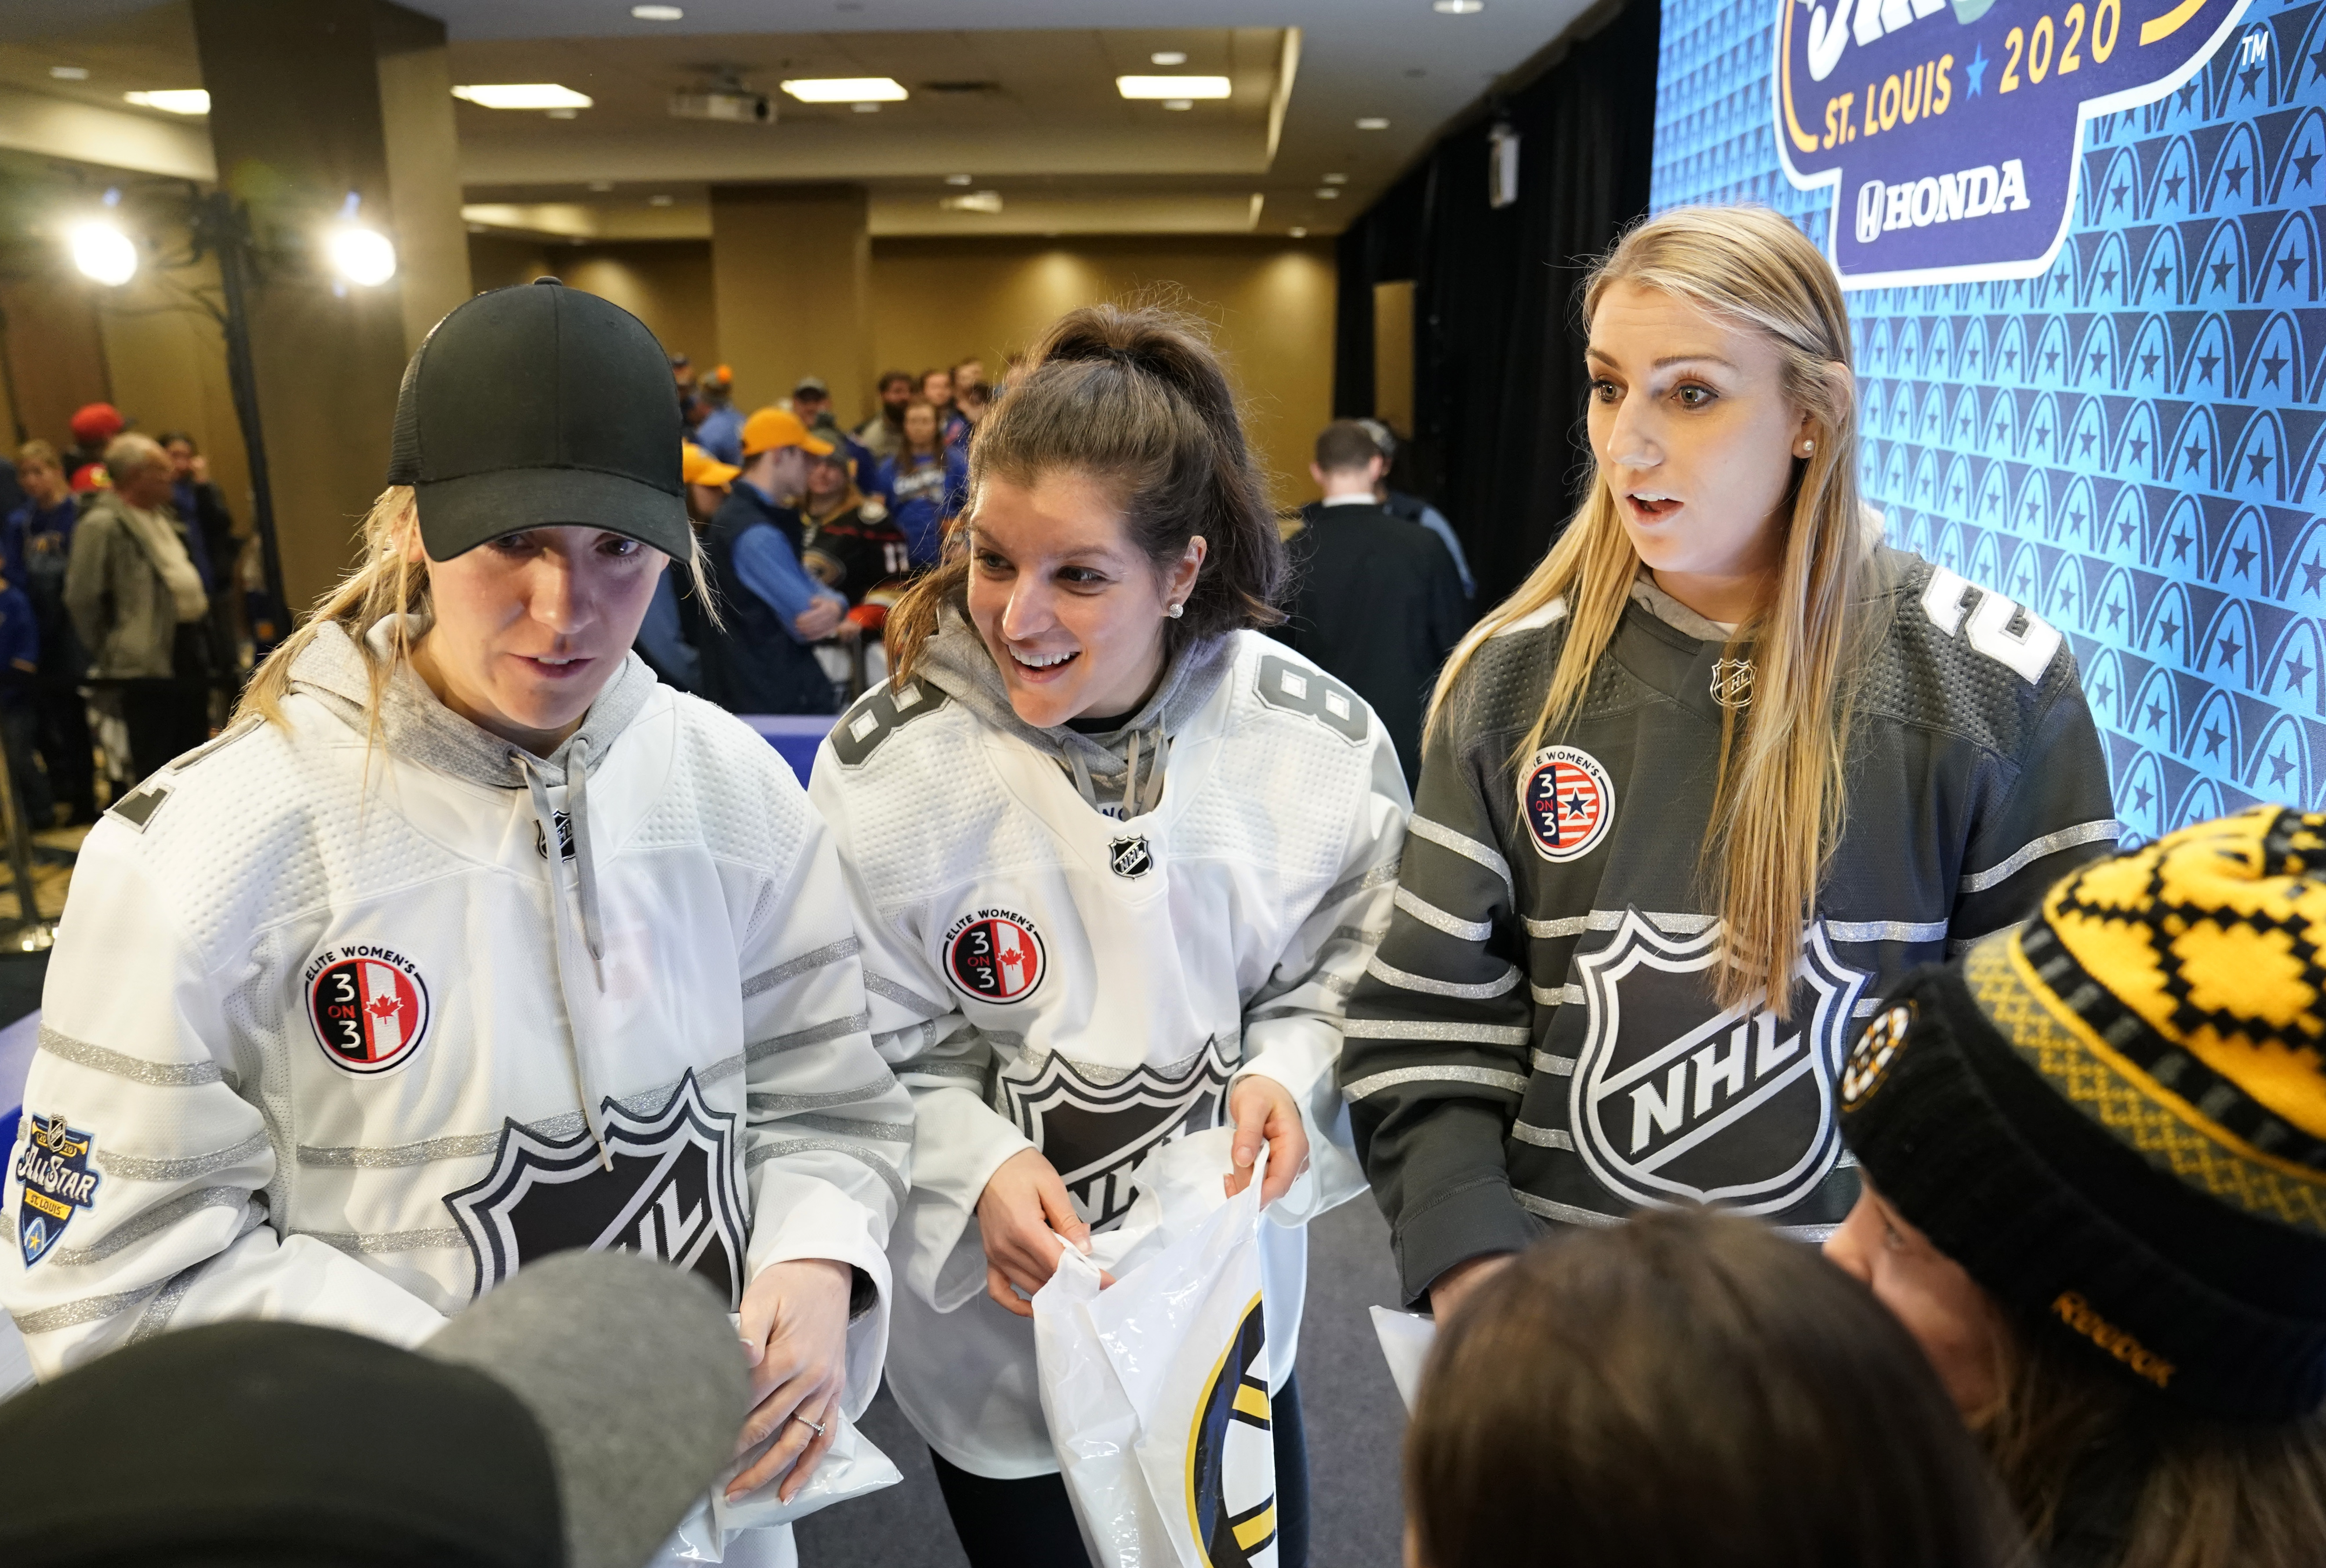 ST LOUIS, MISSOURI - JANUARY 25: (L-R) Meghan Agosta. Laura Fortino and Annie Pankowski speak with fans during the 2020 NHL All-Star Fan Fair at St. Louis Union Station on January 25, 2020 in St Louis, Missouri.